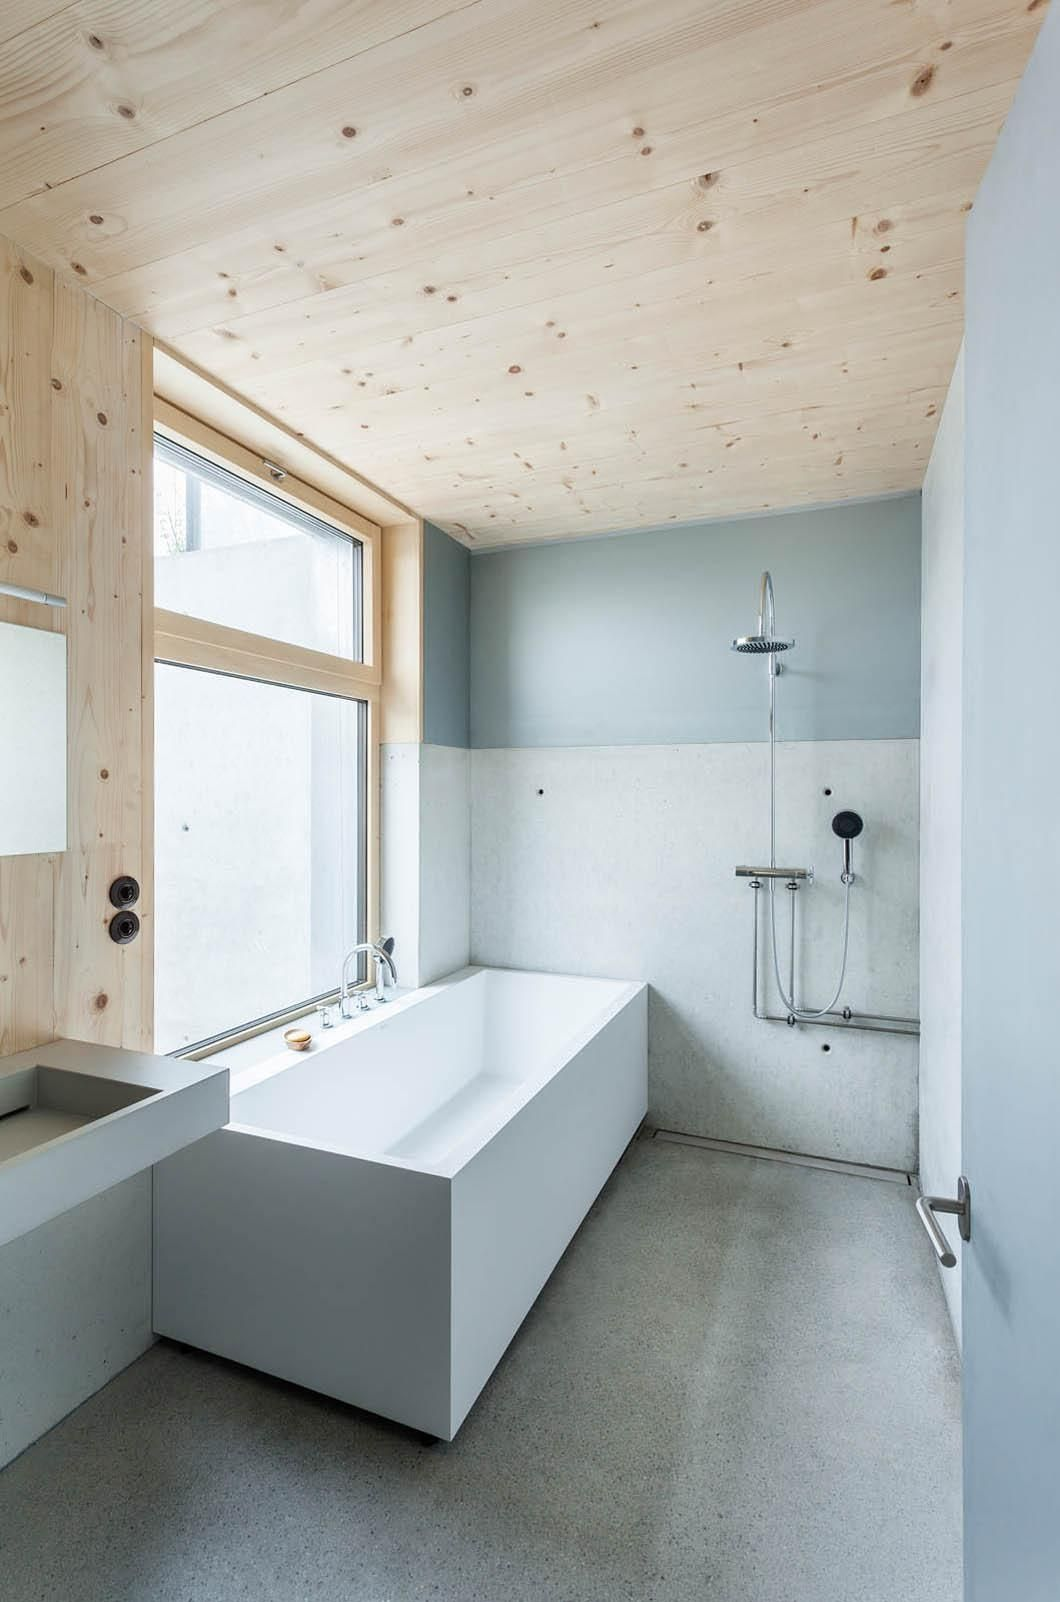 Shv_Sullnerhaus Vorarlbergmiss_Vdr Architektur  Severin Pleasing Awesome Bathrooms Review